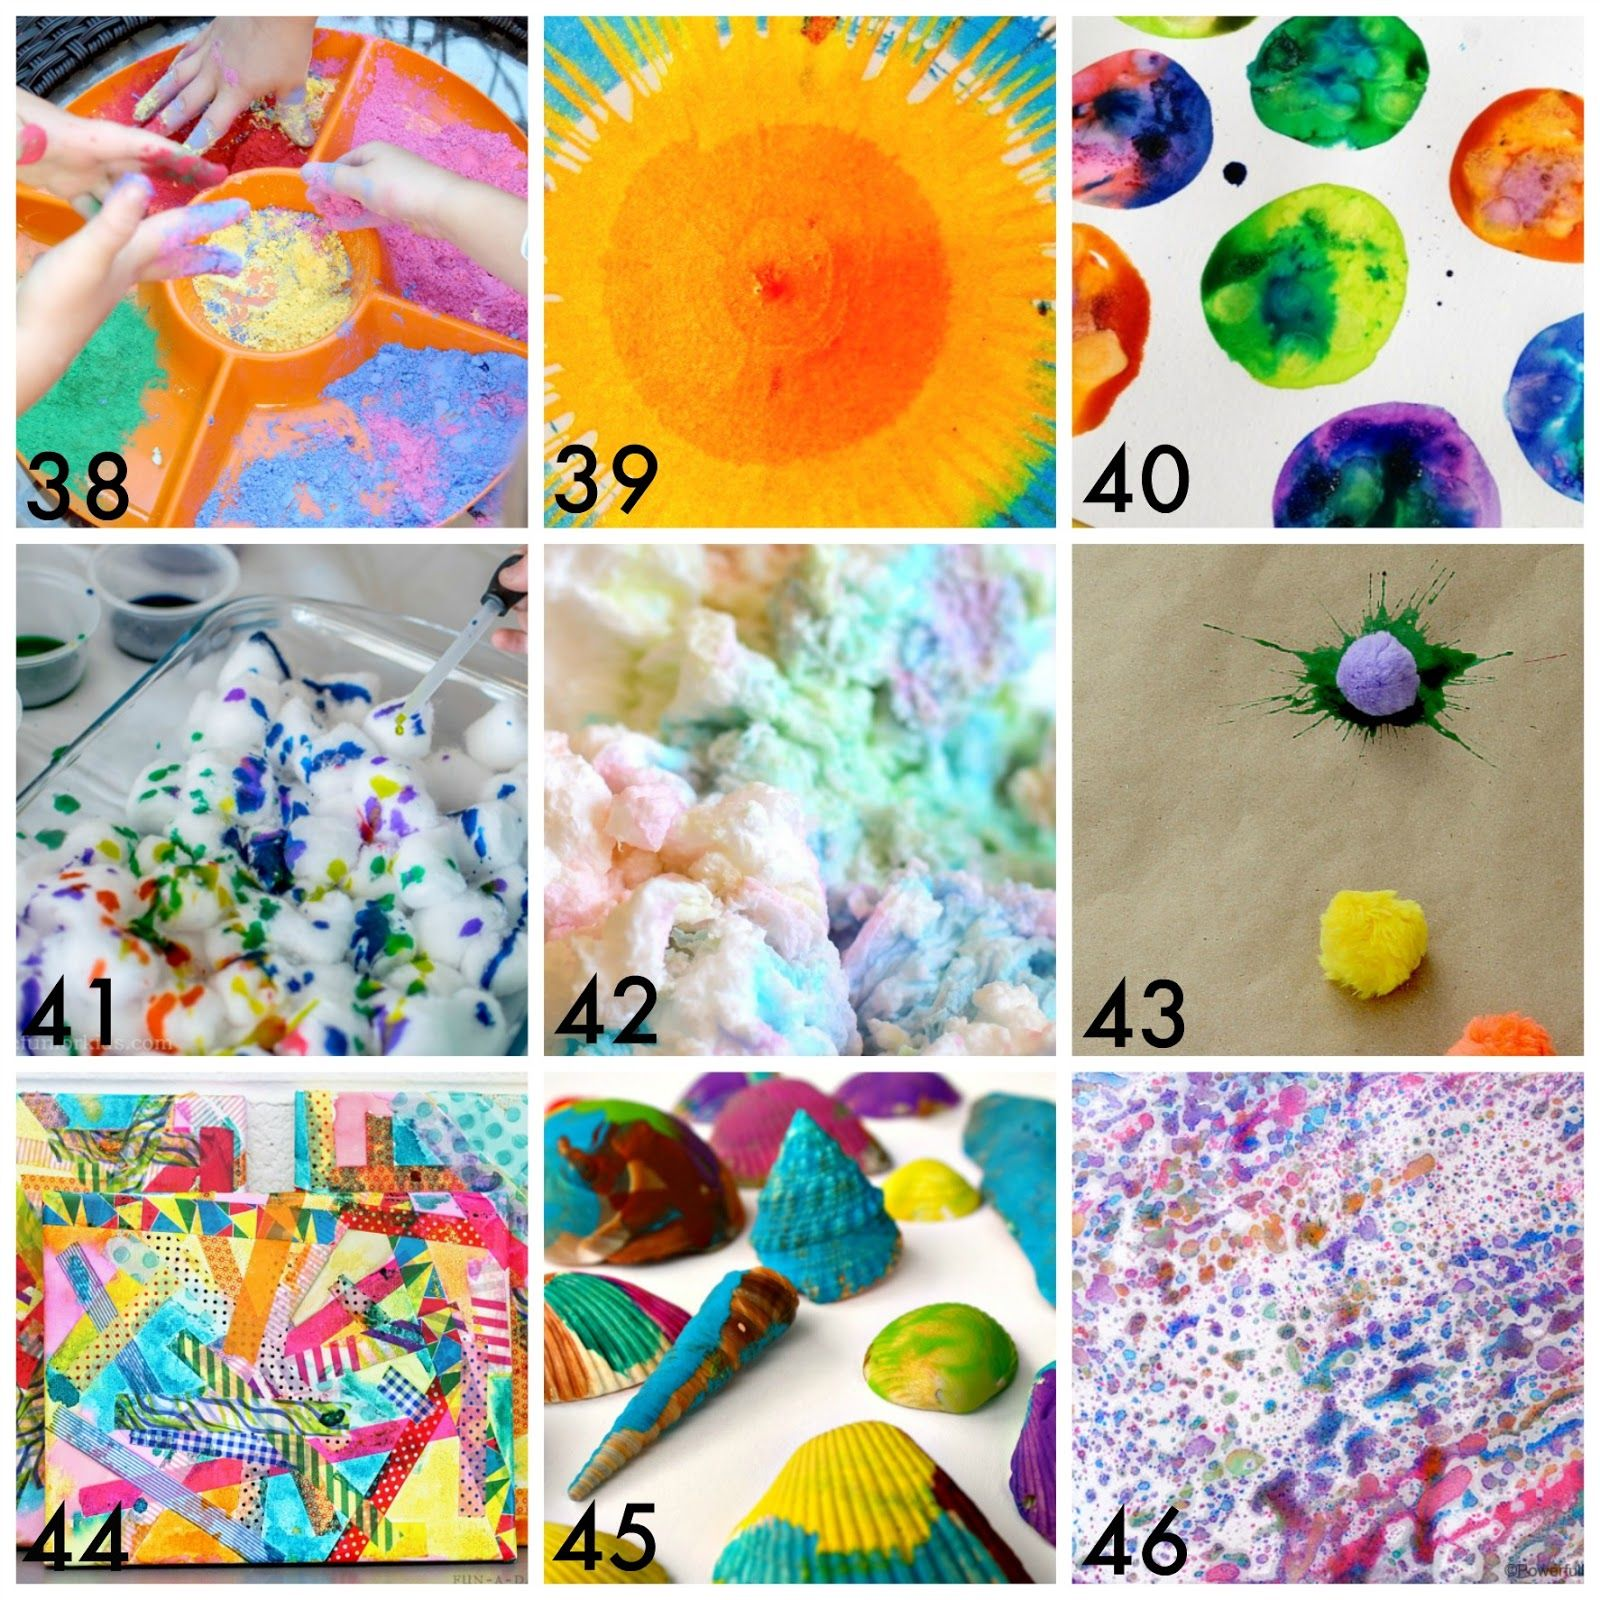 31+ Art ideas for preschoolers at home information